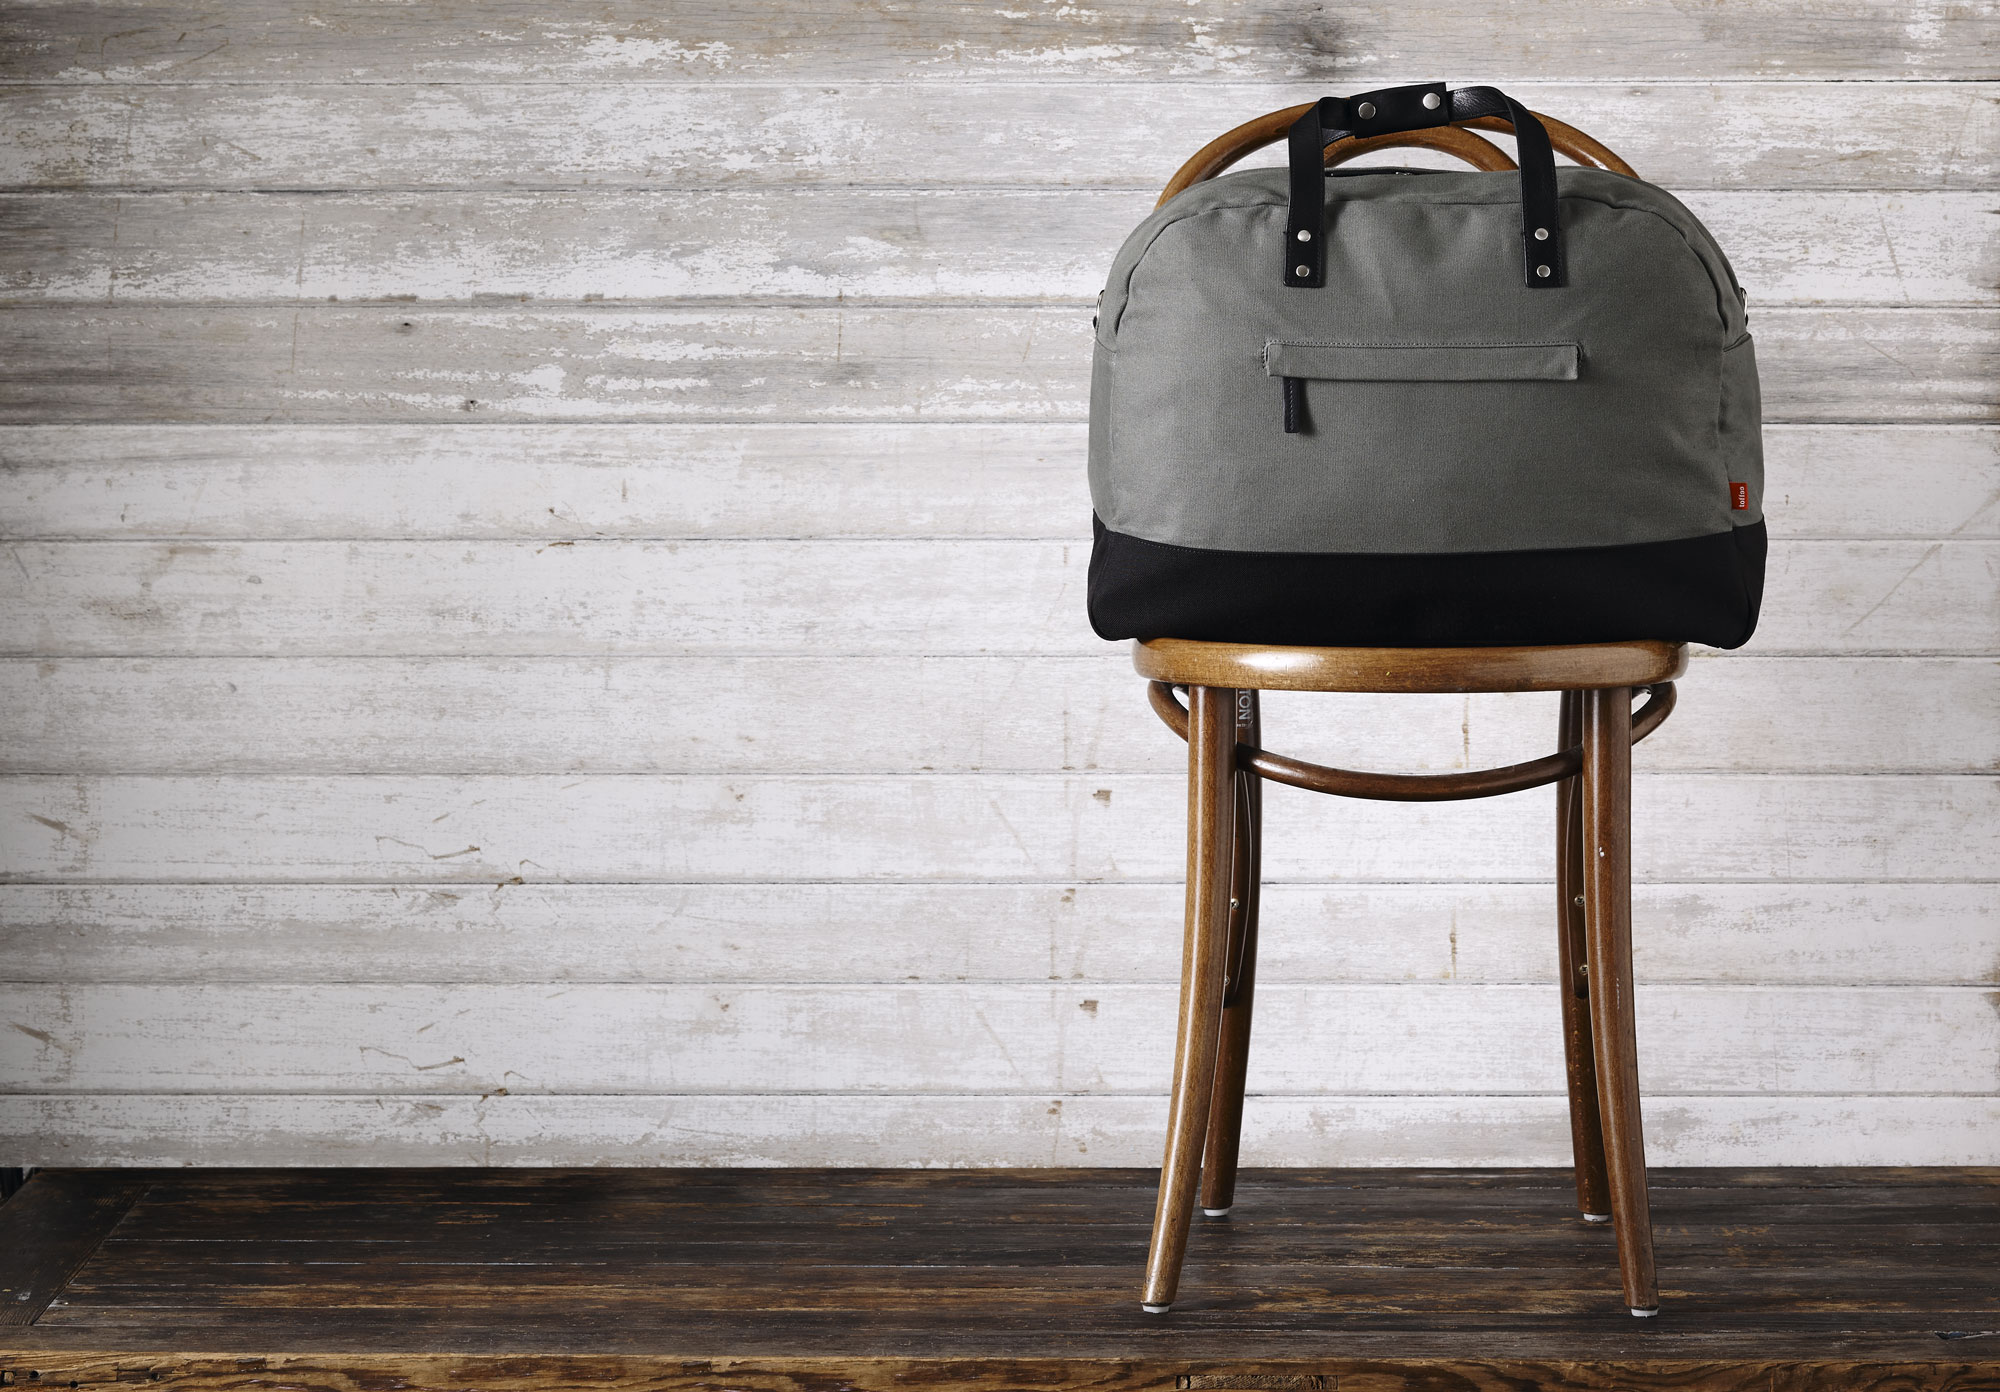 Toffee canvas travel bag for MacBook